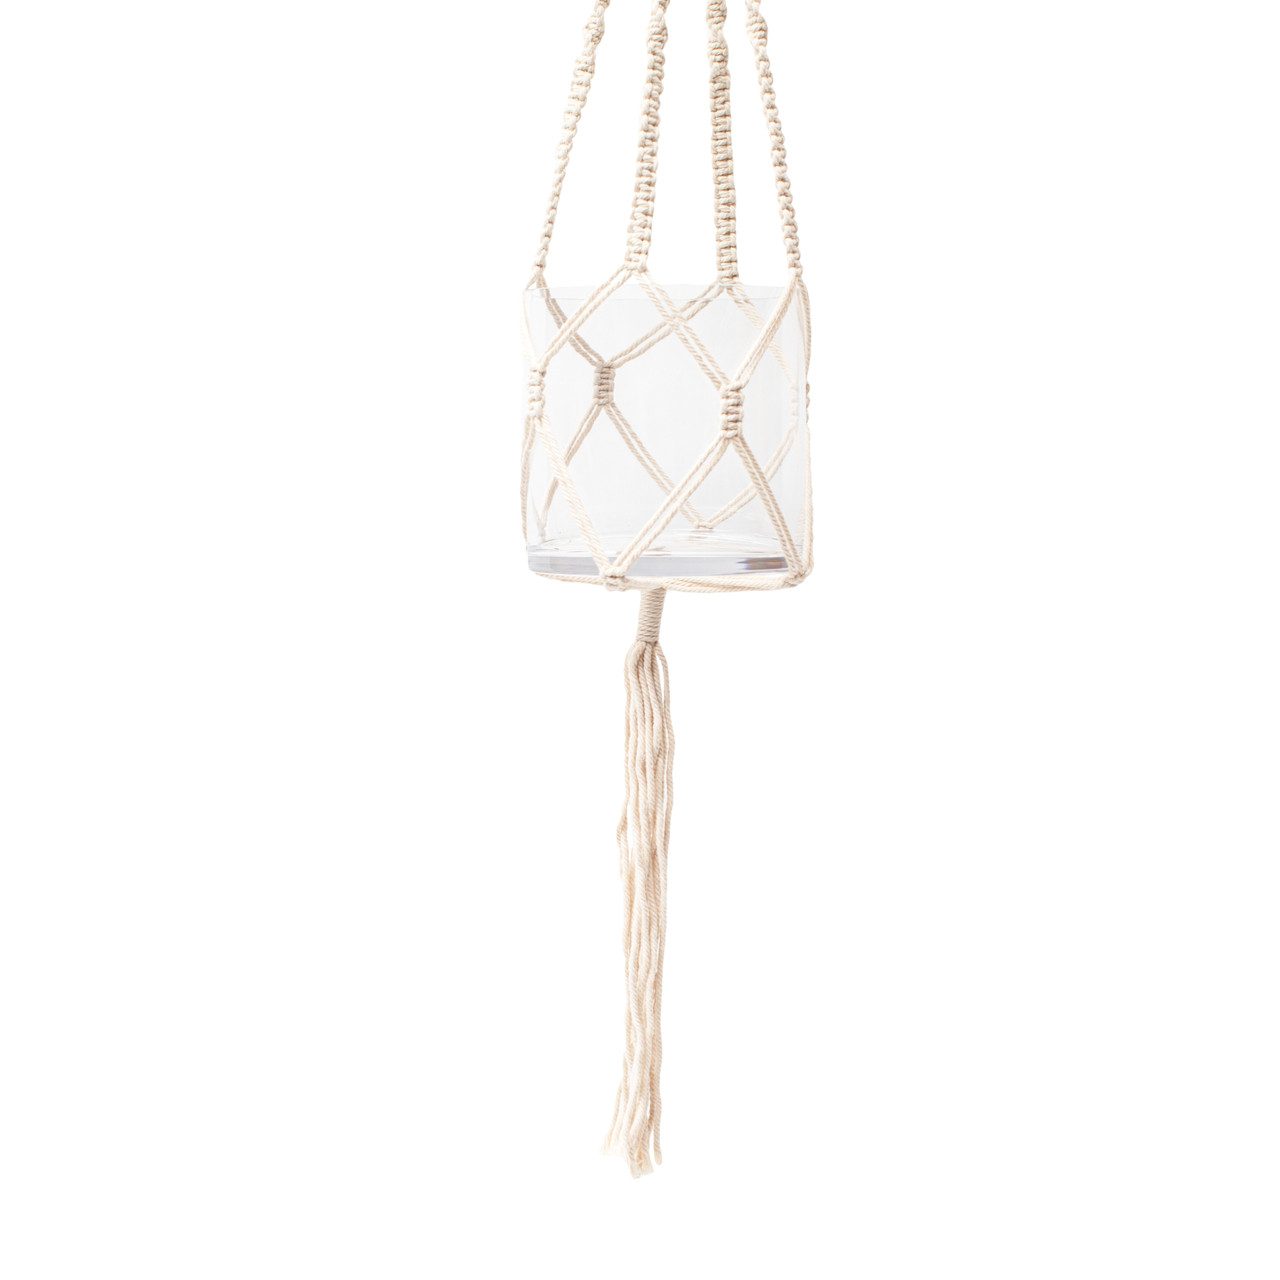 macrame hanging planter with glass vase and tassel